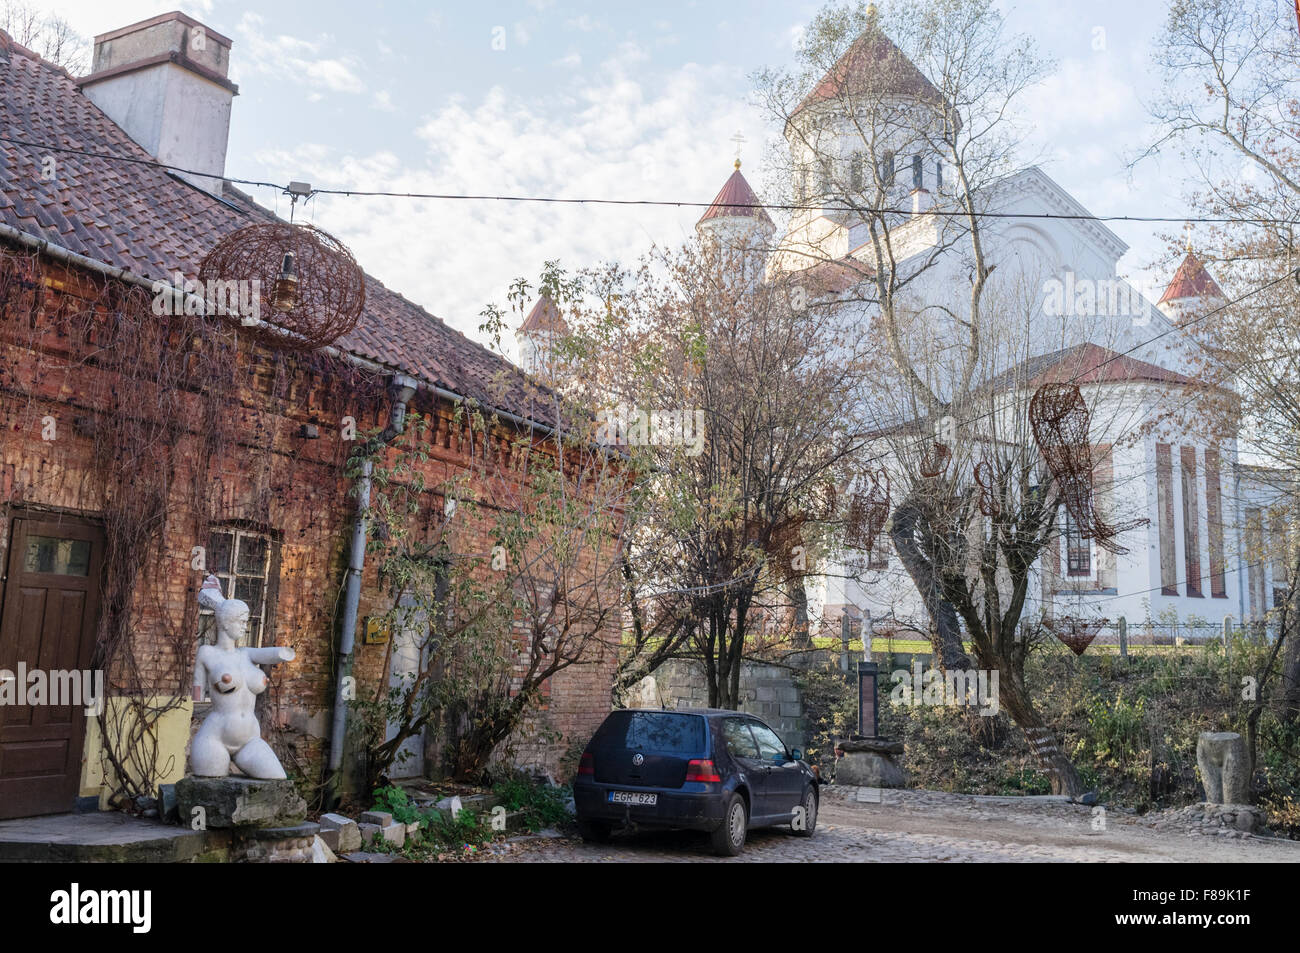 Self-declared independent republic of Uzupis bohemian district. Church of the Holy Mother of God in background. - Stock Image